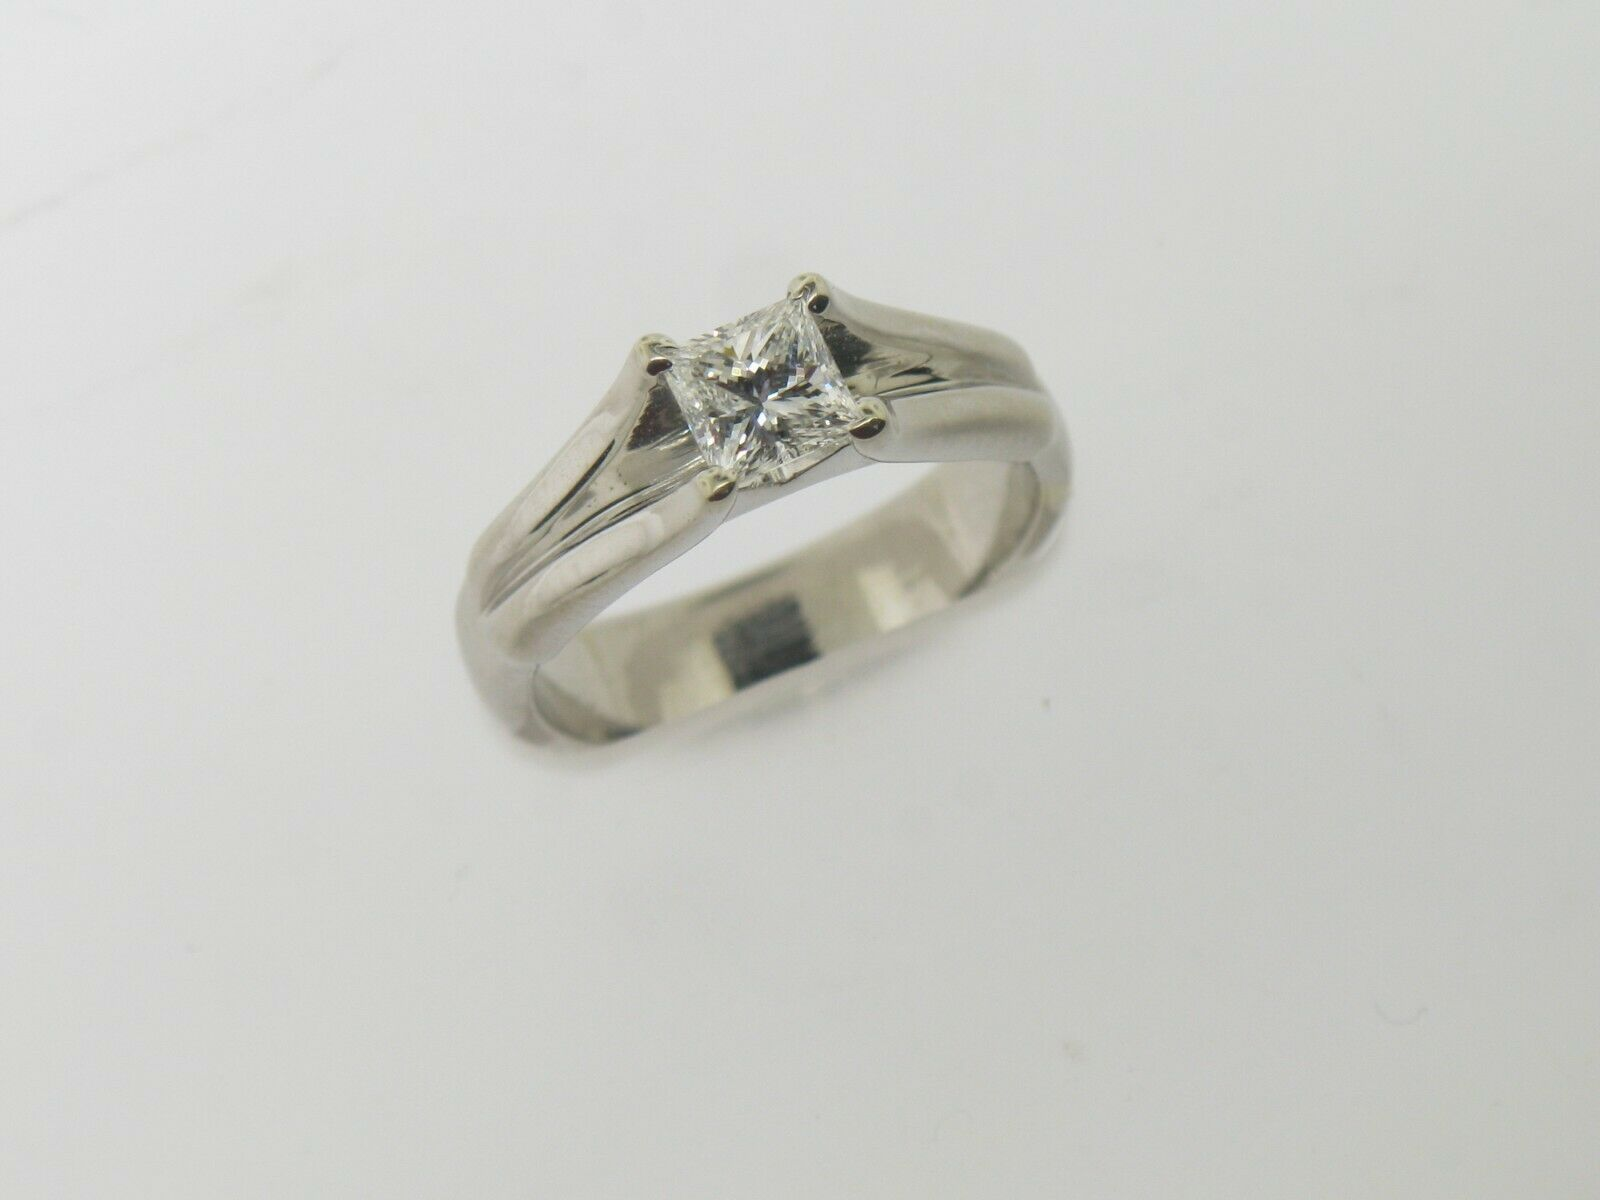 18K White Gold .64 CT Princess Cut Engagement Ring (Internally Flawless) (GIA) 8